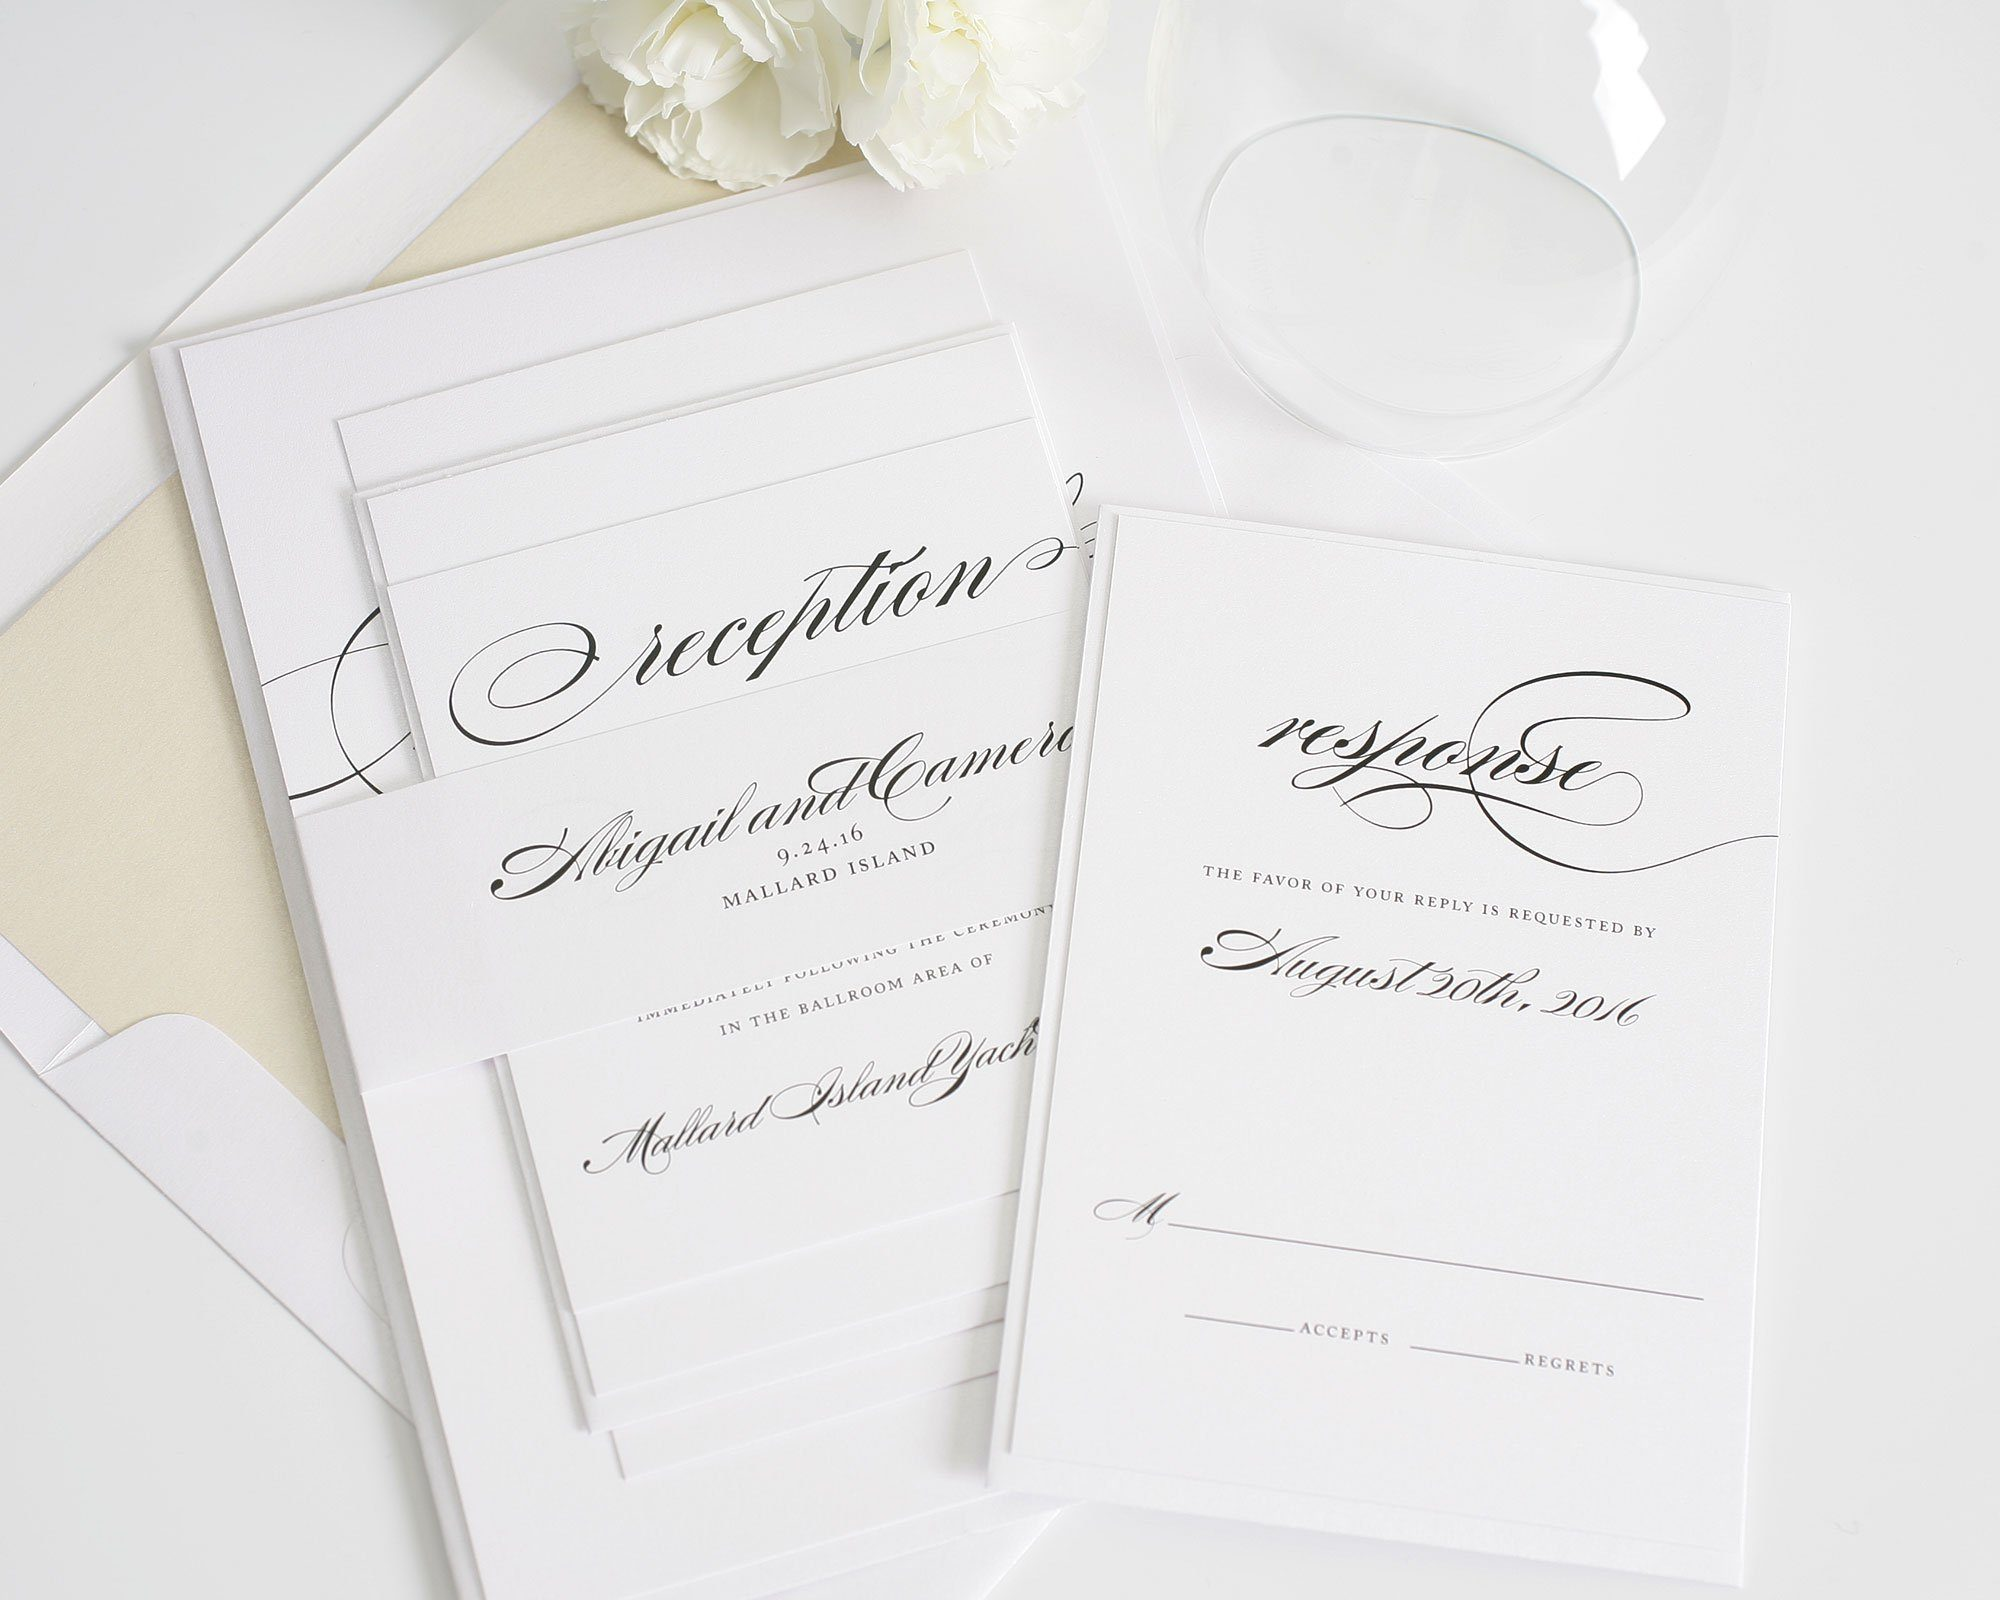 champagne wedding invitations classic wedding invitations in champagne and ivory - Amazing Wedding Invitations